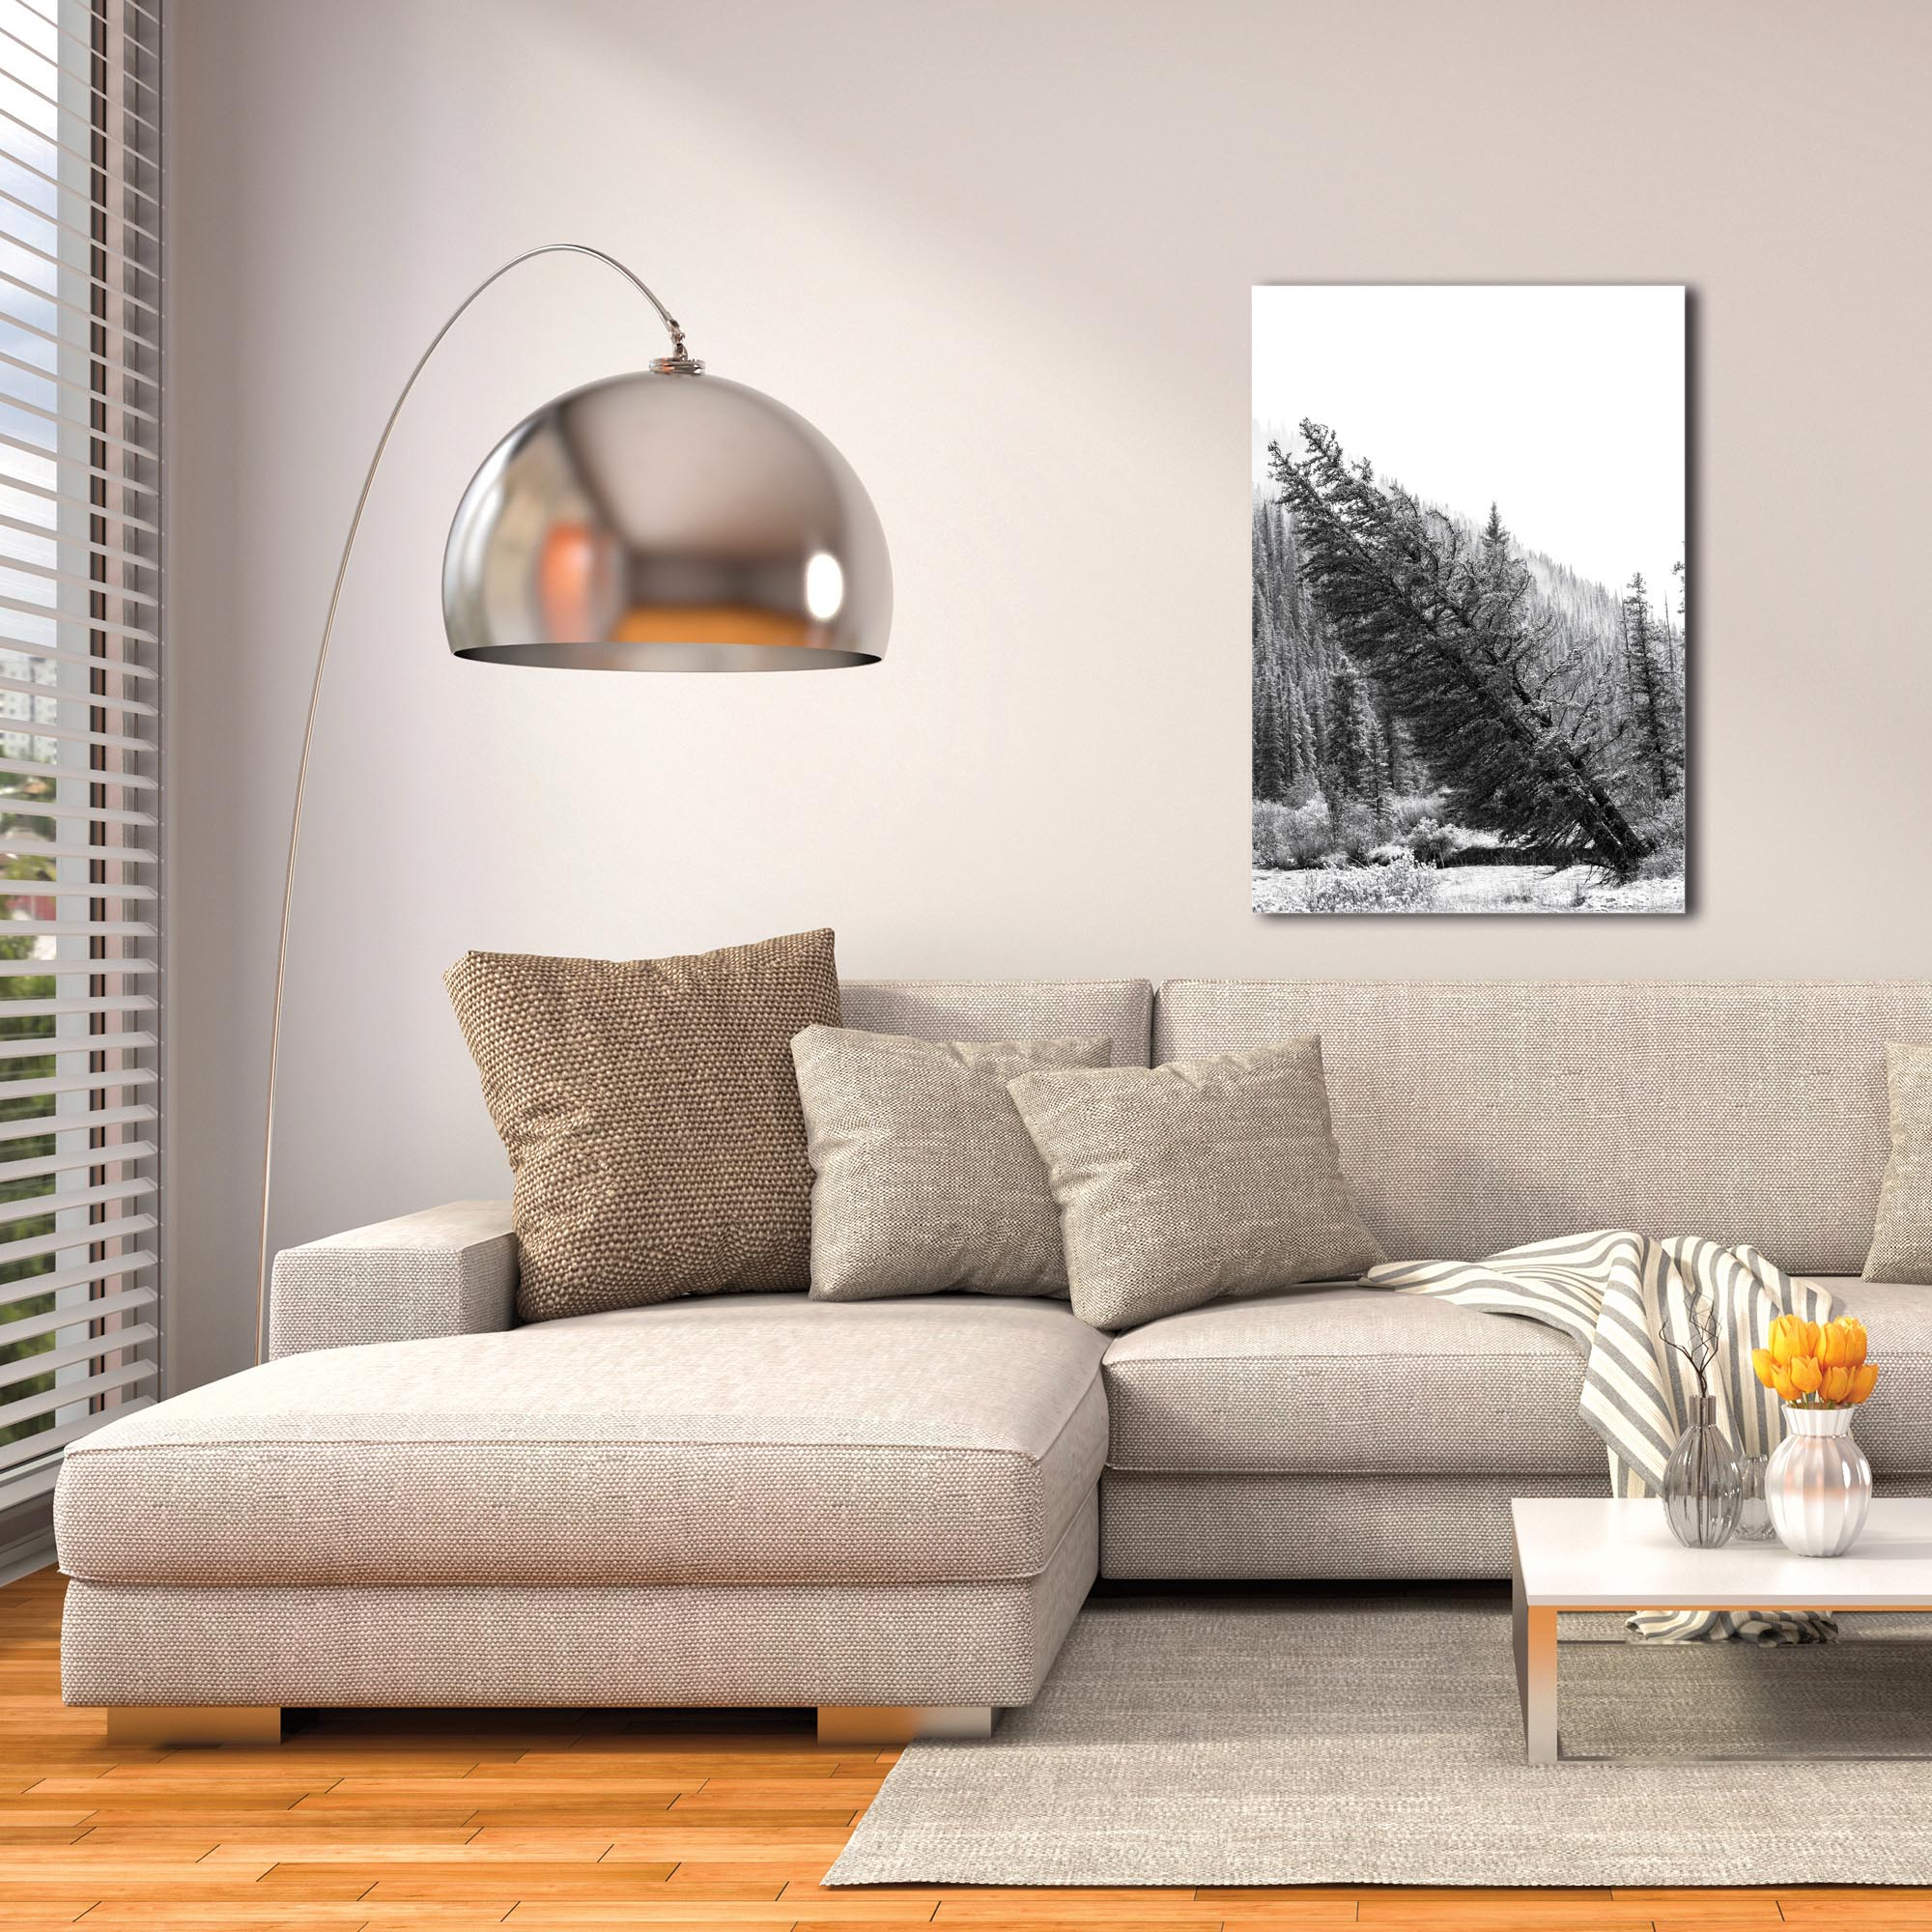 Black & White Photography 'Tilted Pines' - Winter Trees Art on Metal or Plexiglass - Image 3